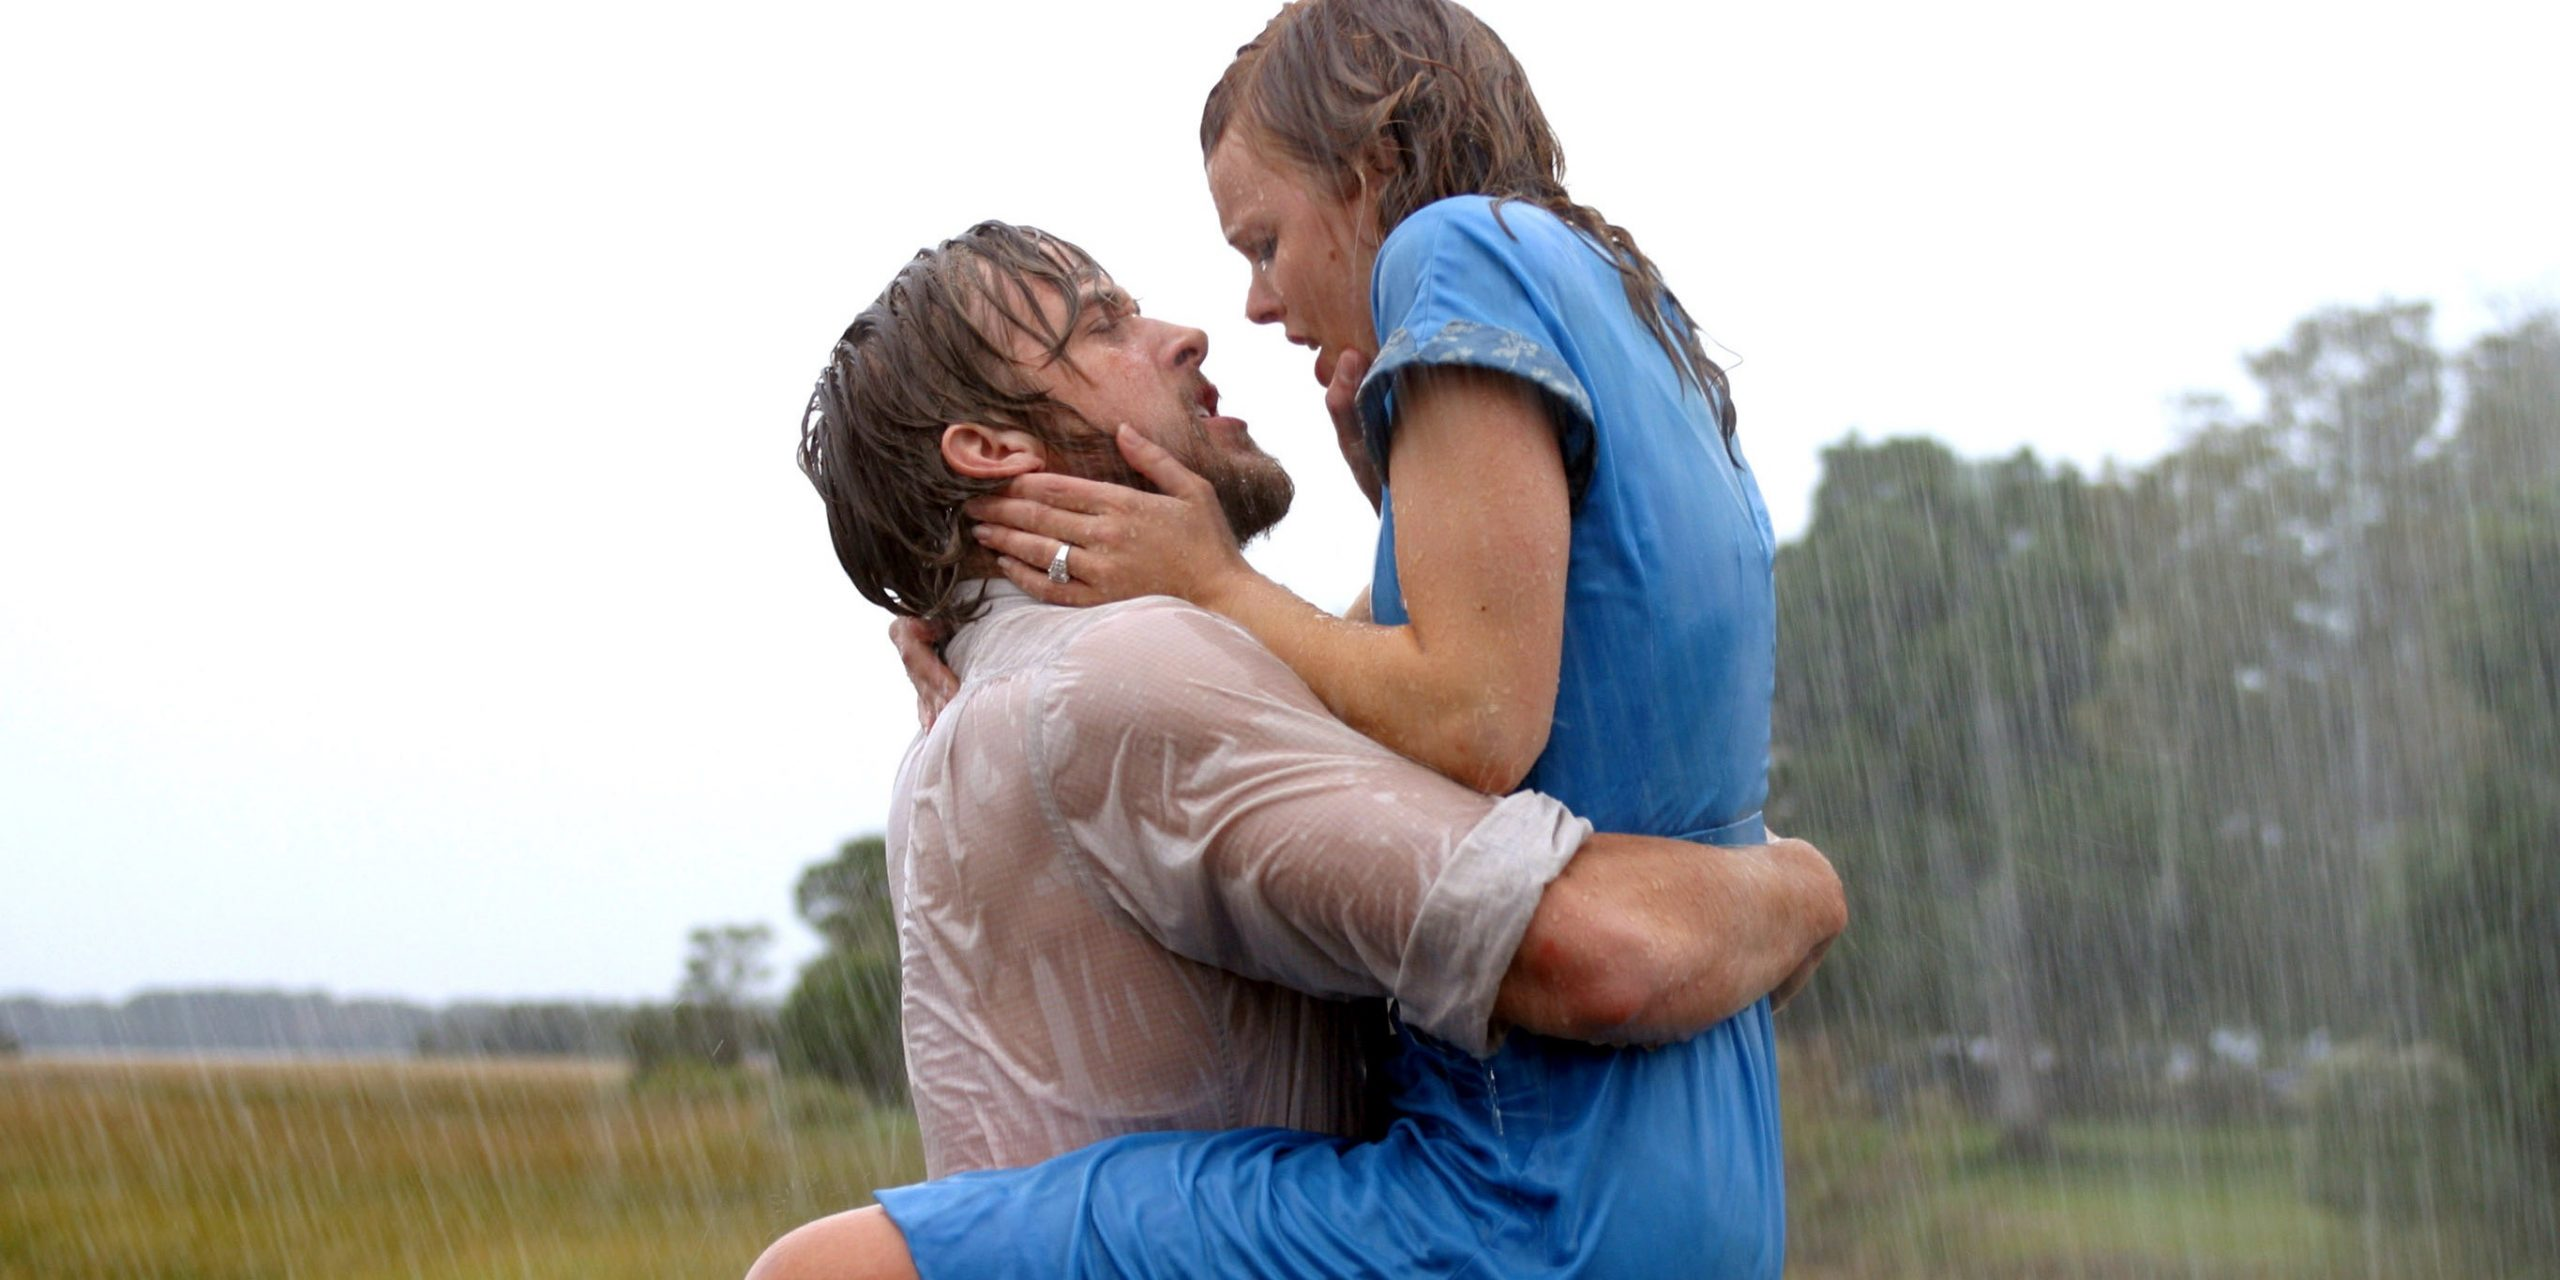 The Notebook (12A) at Luton Hoo